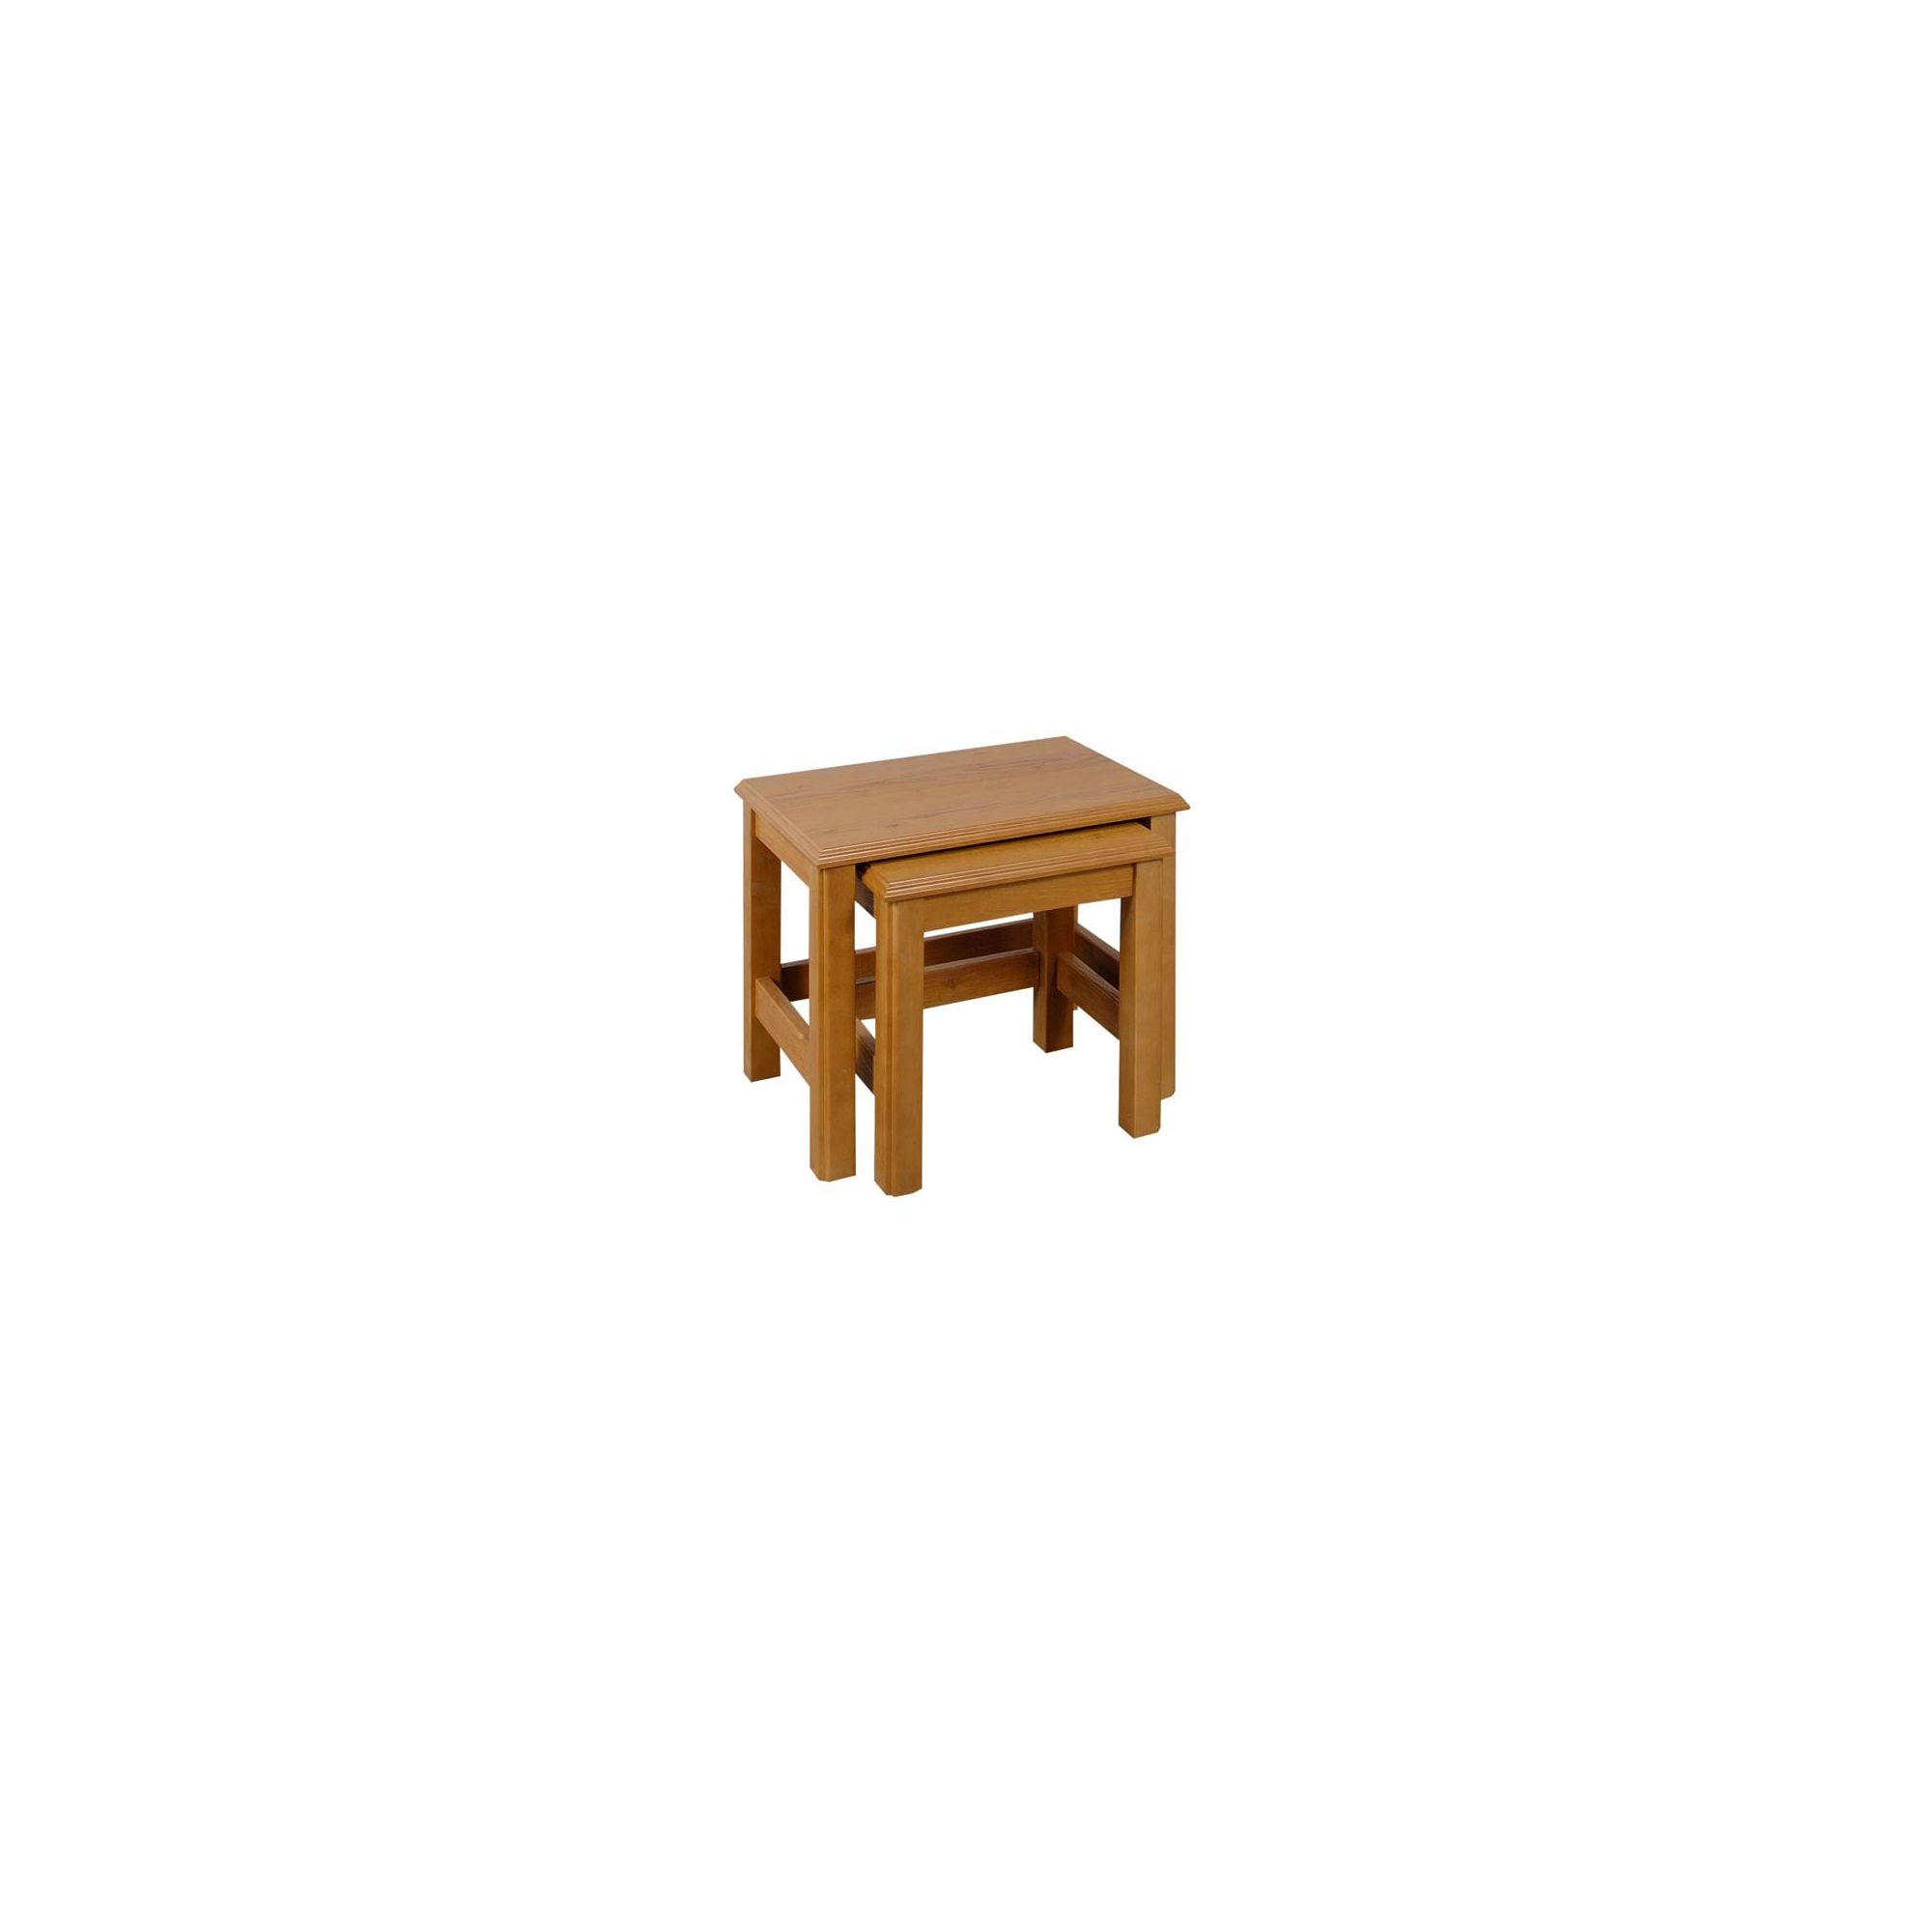 Caxton Canterbury Nest of Tables in Golden Chestnut at Tesco Direct